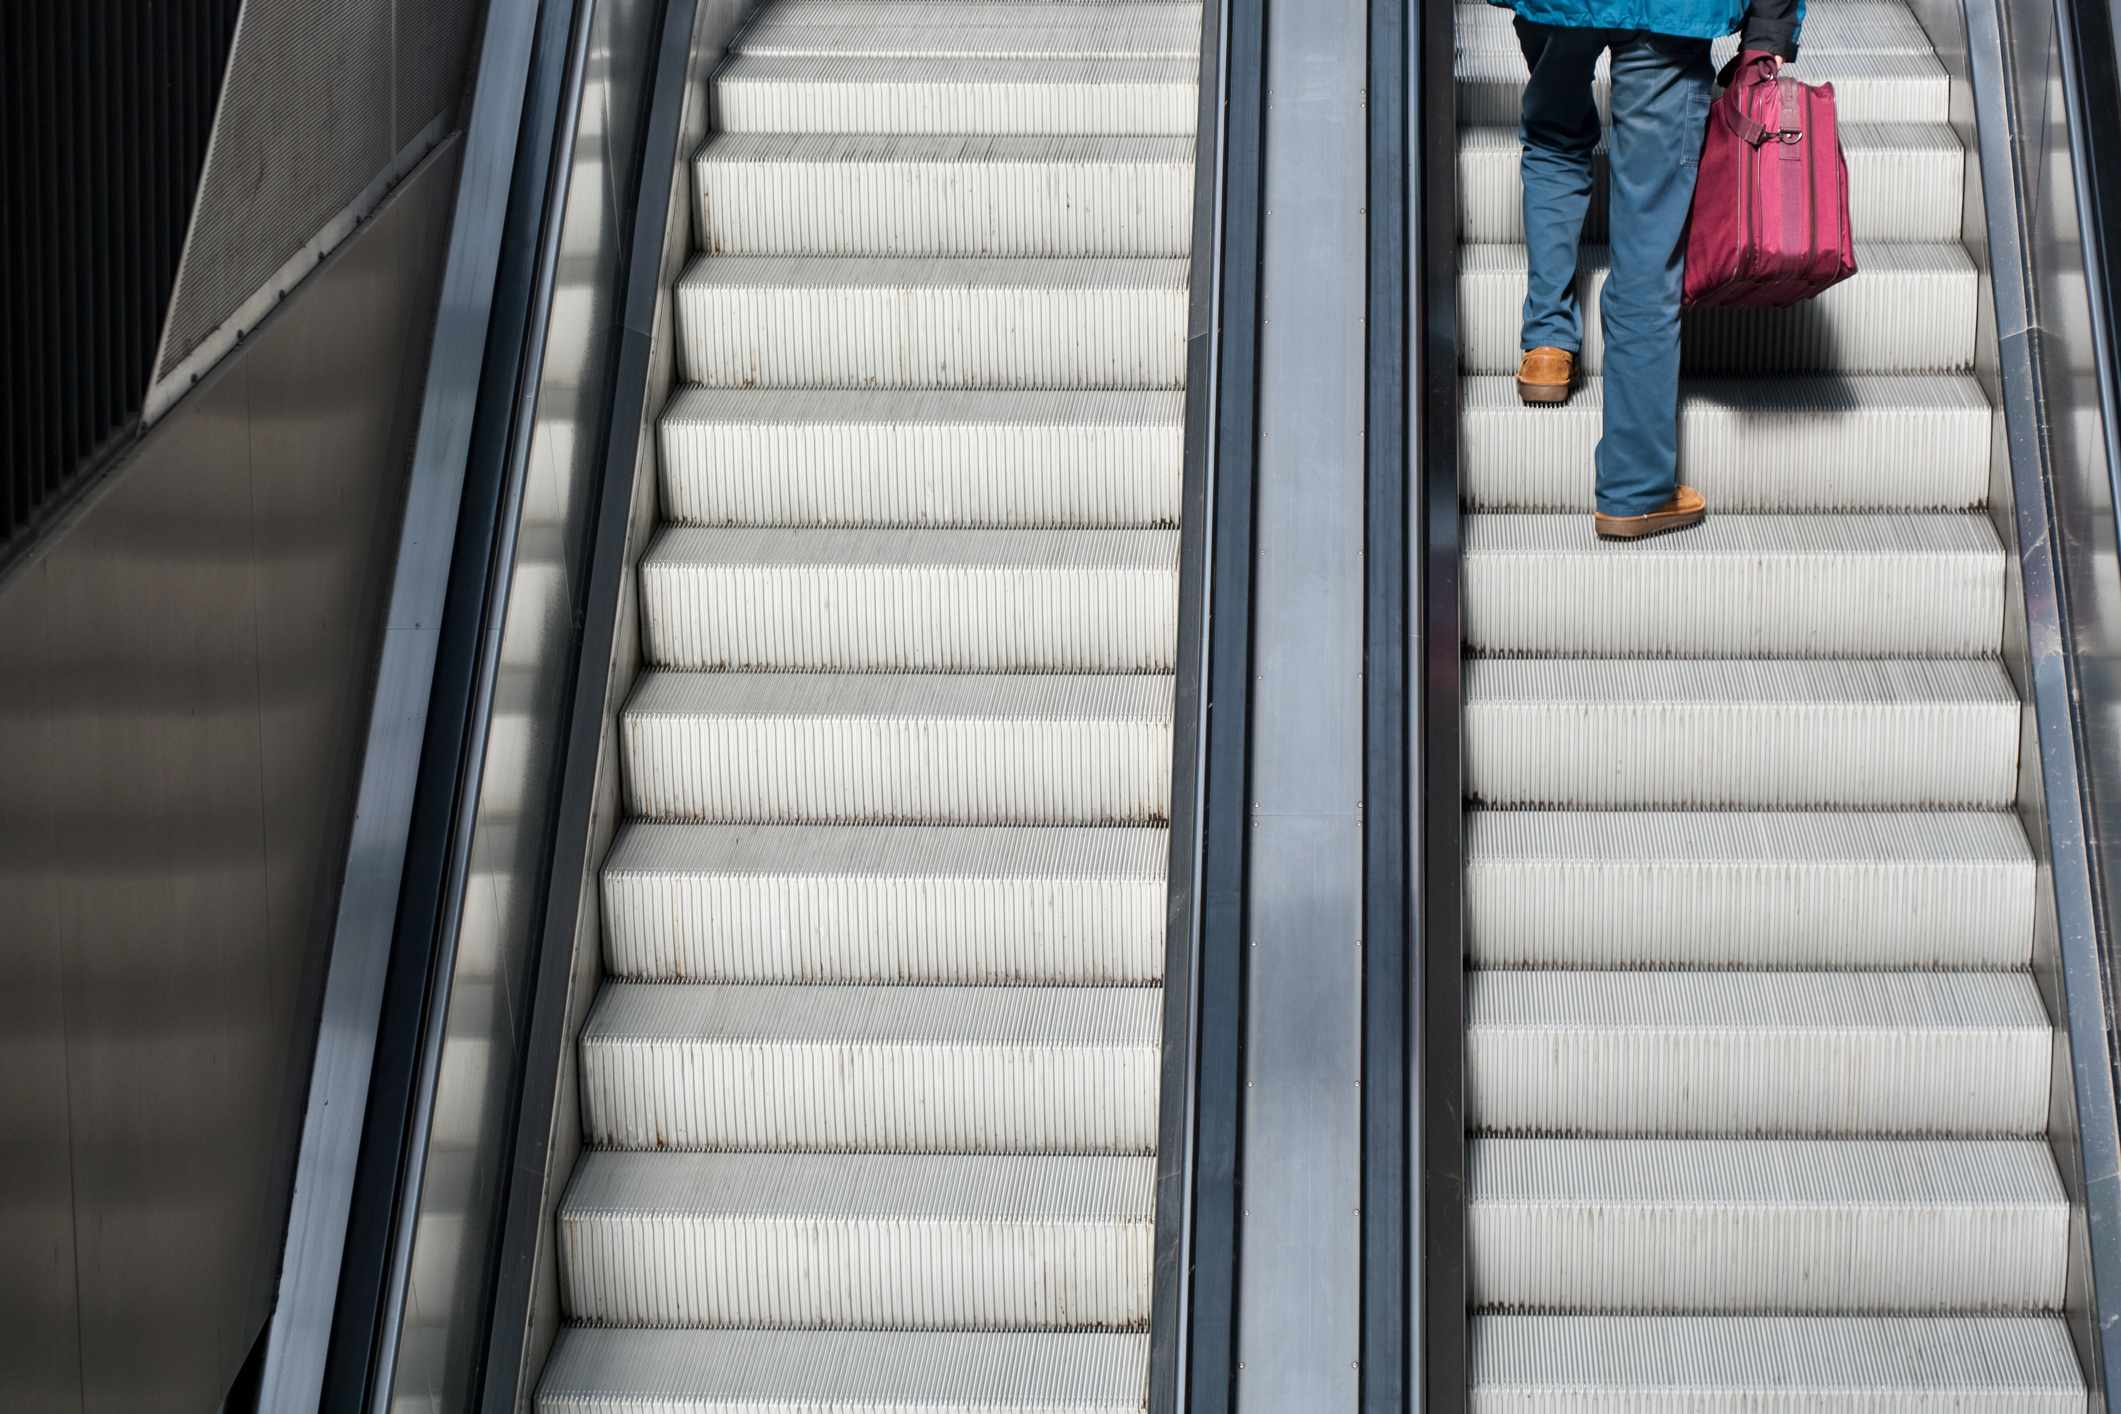 Why does it feel strange to walk up a non-working escalator? © Getty Images